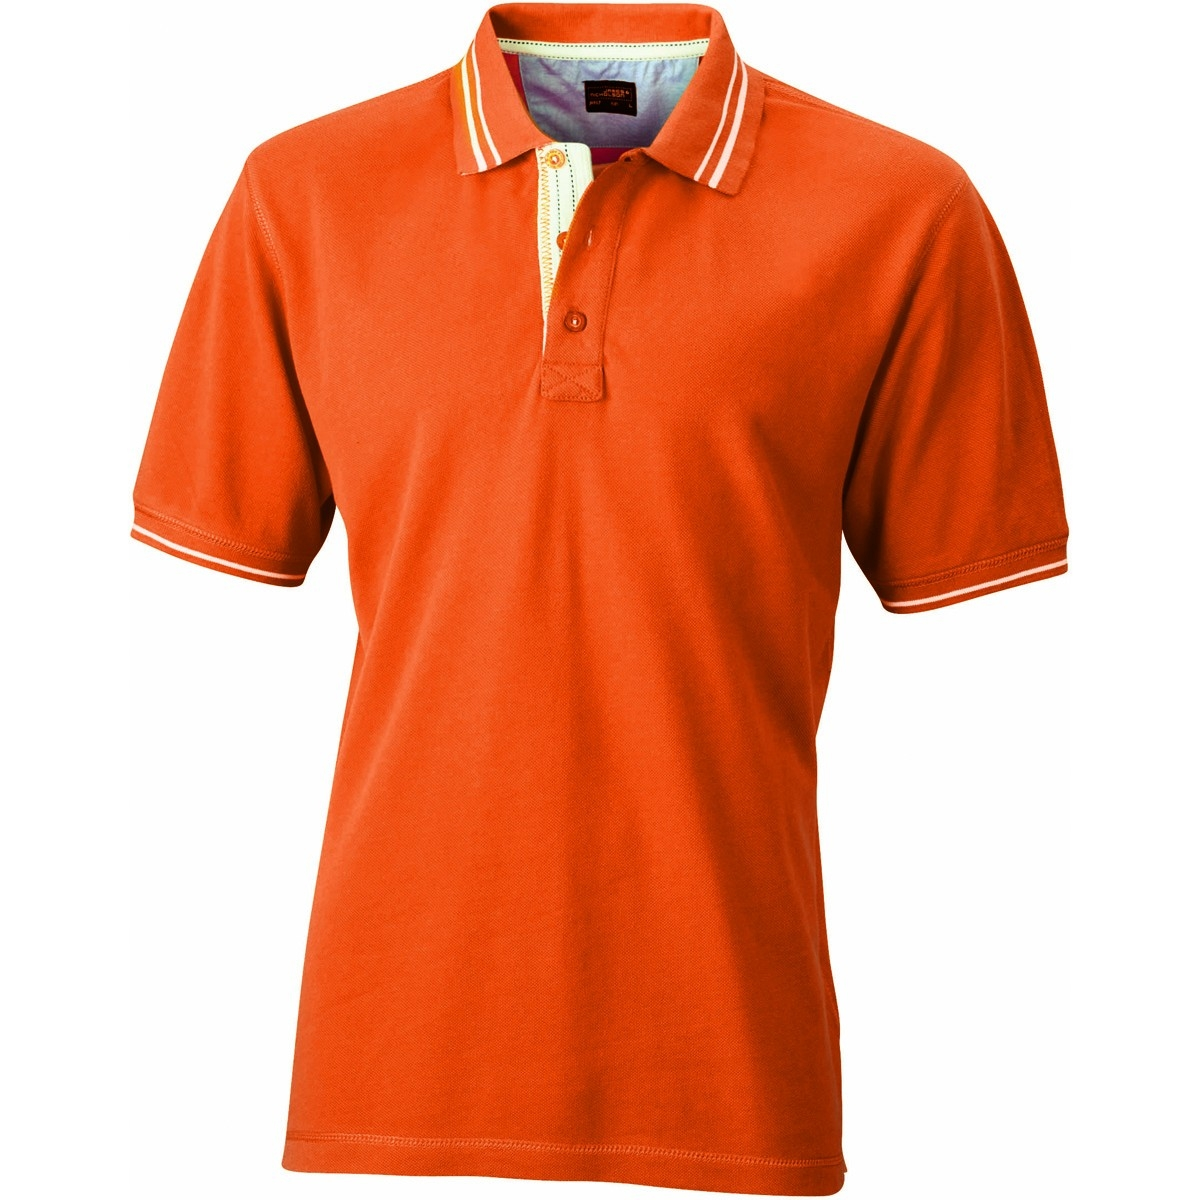 James et Nicholson Polo homme - JN947 - orange